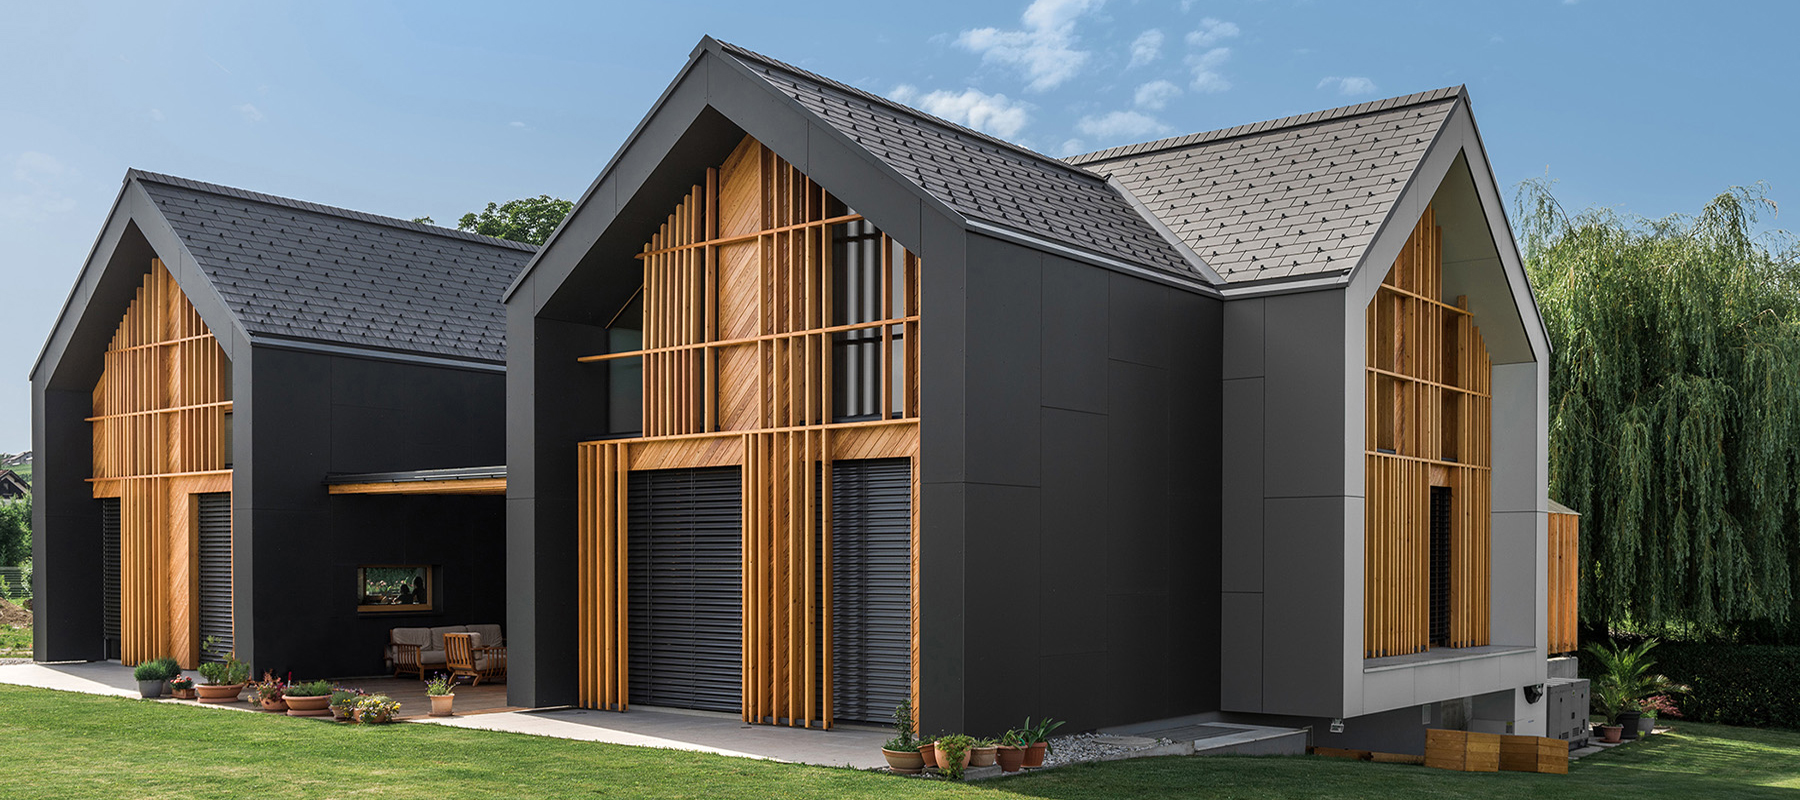 All black house design of three gabled volumes digsdigs for Black home design